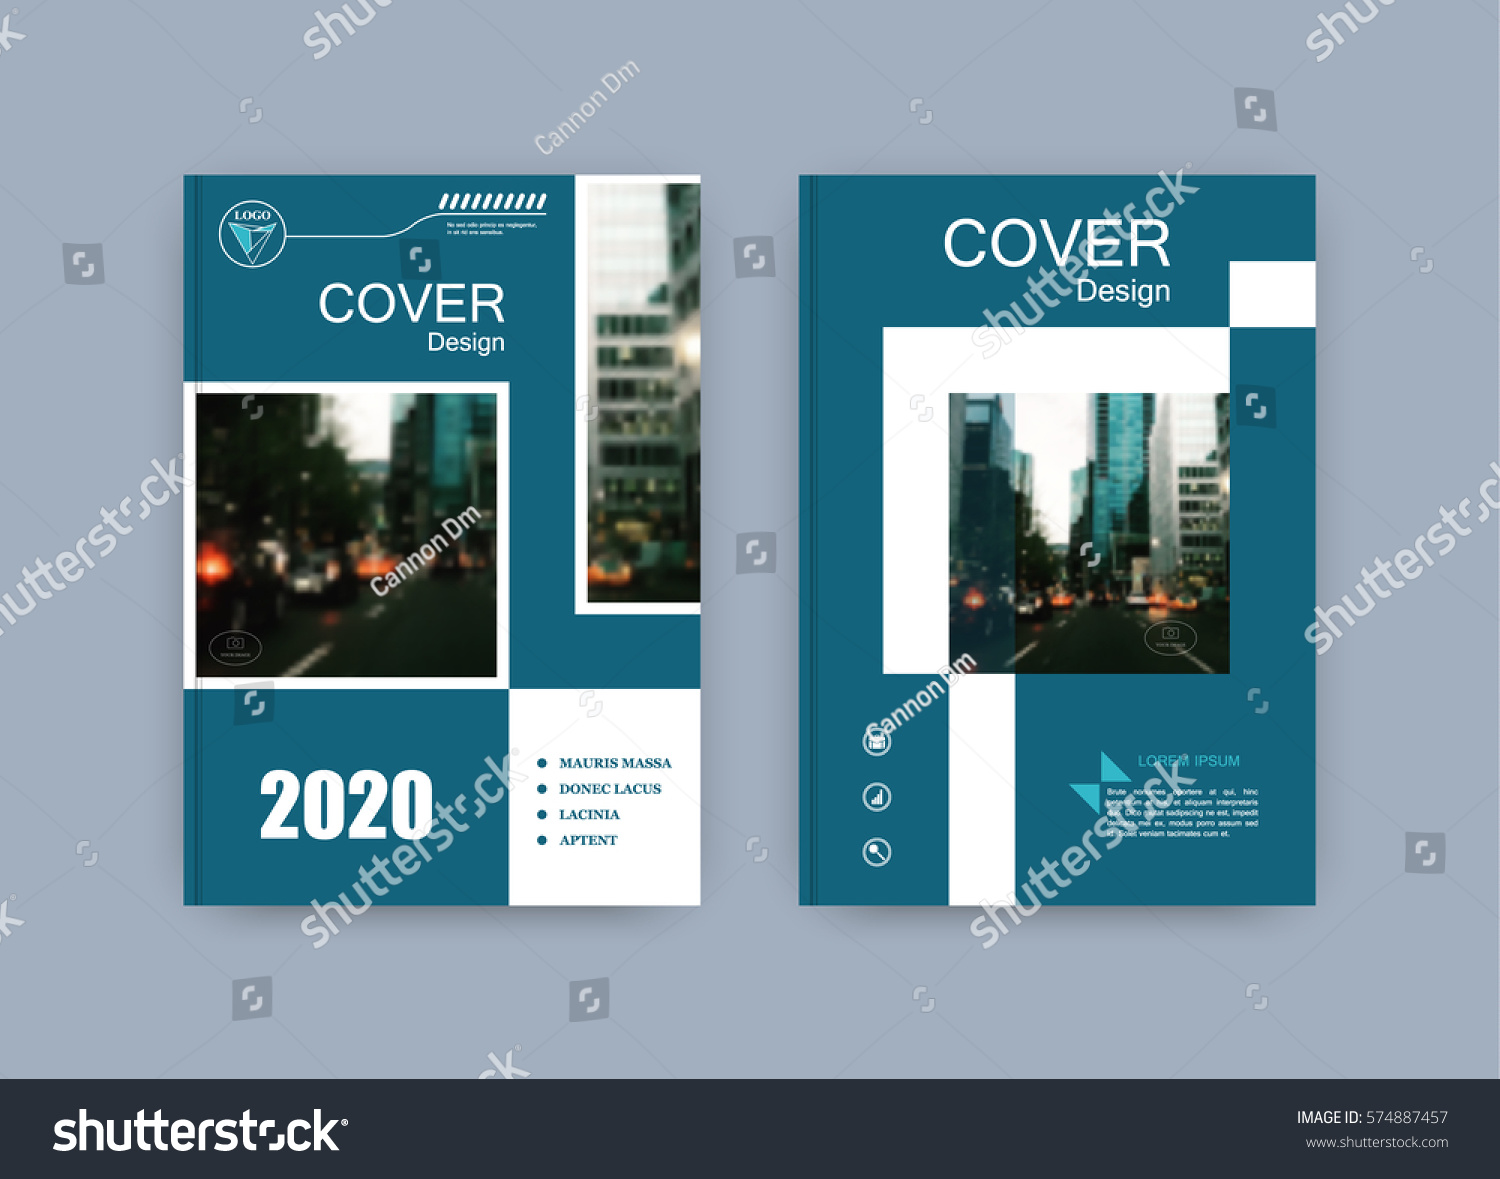 Creative Book Cover Images ~ Creative book cover design abstract composition stock